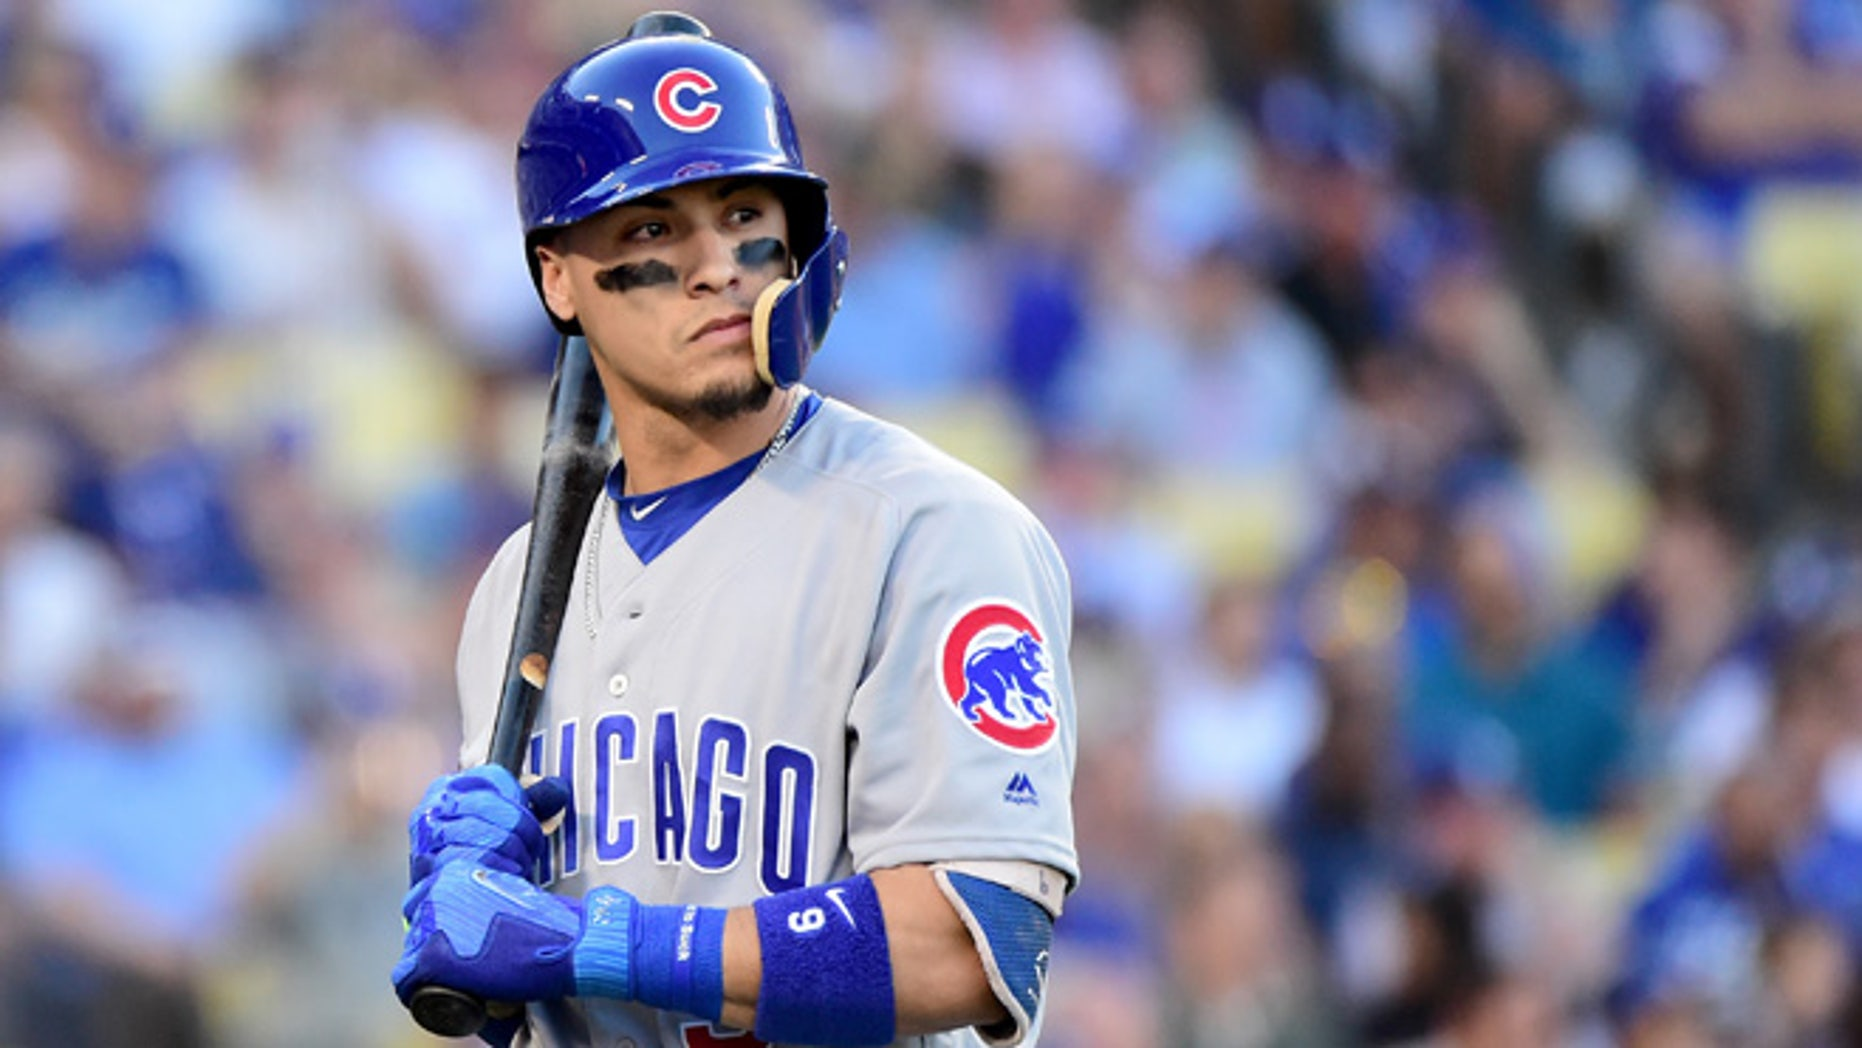 LOS ANGELES, CA - OCTOBER 20: Javier Baez #9 of the Chicago Cubs reacts after striking out in the first inning in game five of the National League Division Series at Dodger Stadium on October 20, 2016 in Los Angeles, California.  (Photo by Harry How/Getty Images)